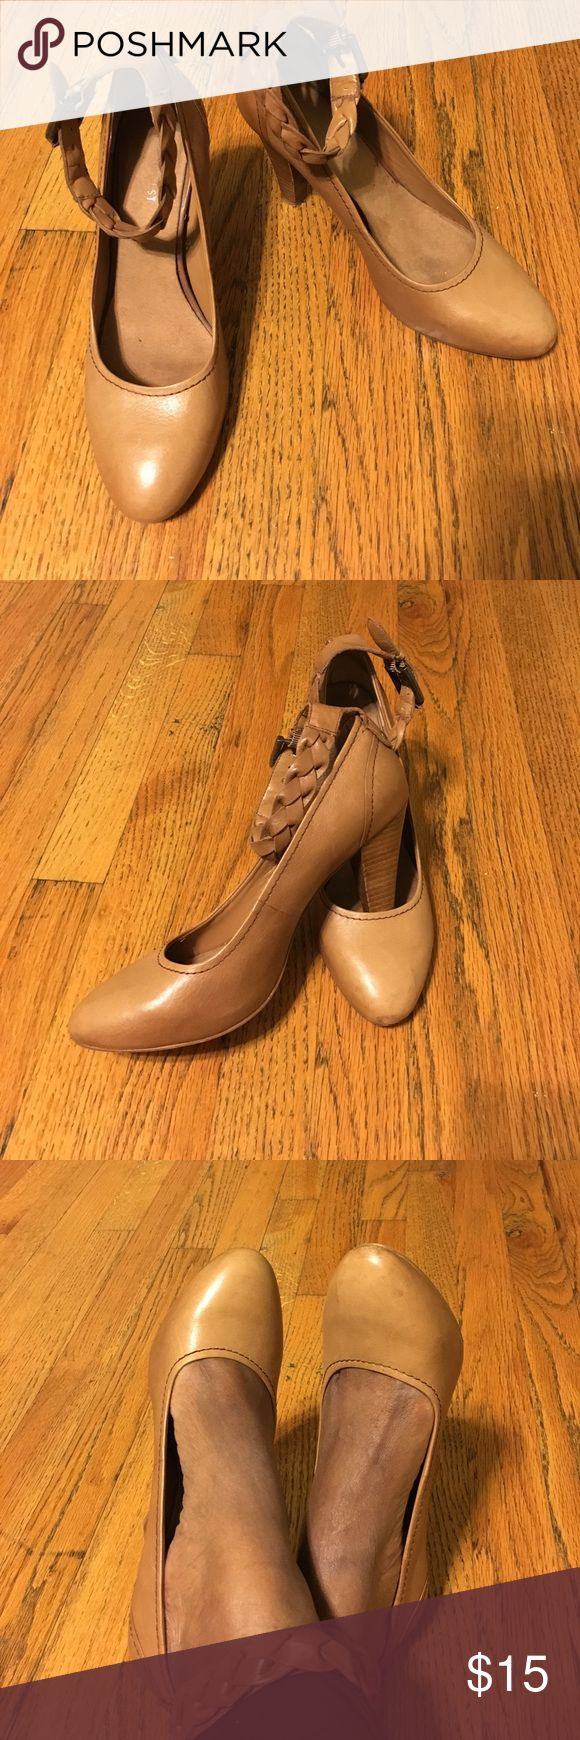 Nine West Heels with Ankle Straps - Sz 8 Nine West Tan Leather Heels with Ankle Straps - Sz 8. See photos for details of pre-owned condition. Nine West Shoes Heels